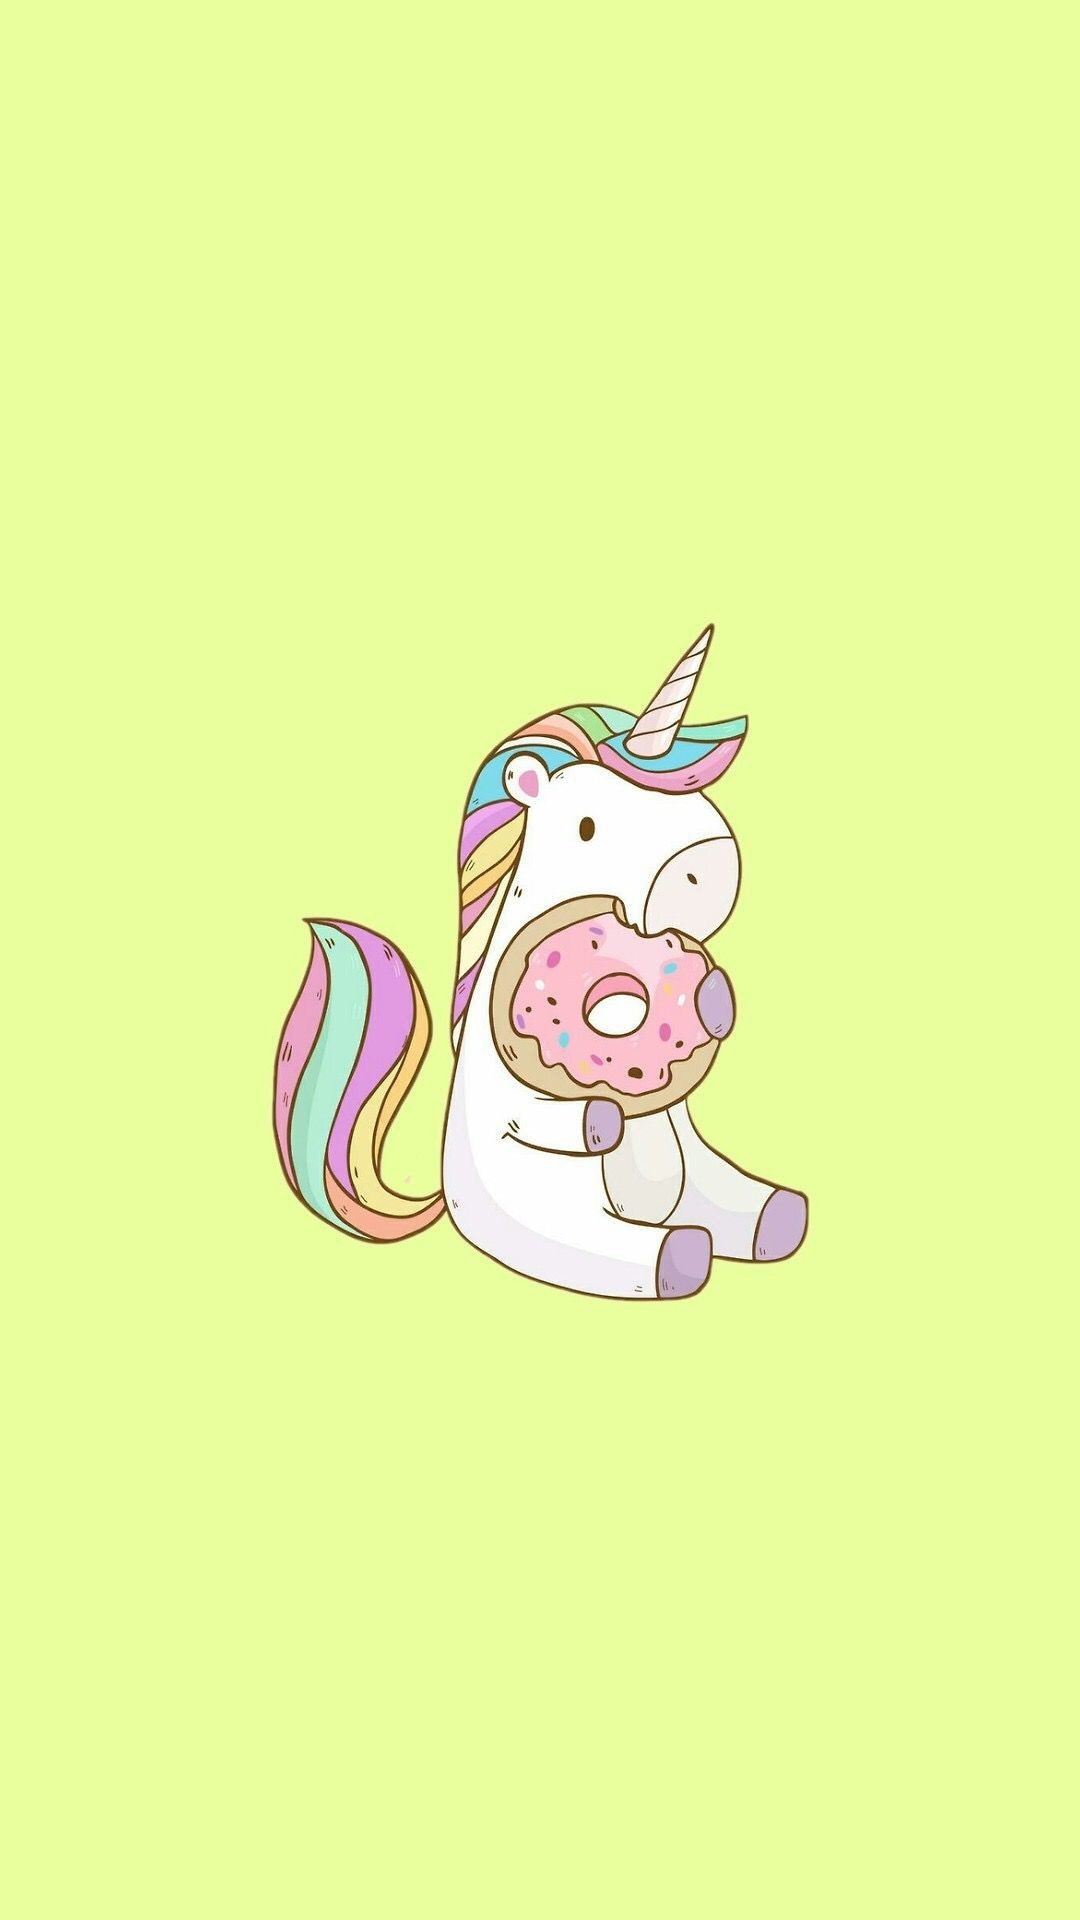 Res: 1080x1920, Pin by •Miss Megan• on ••Wallpapers•• | Pinterest | Unicorns, Wallpaper and  Kawaii